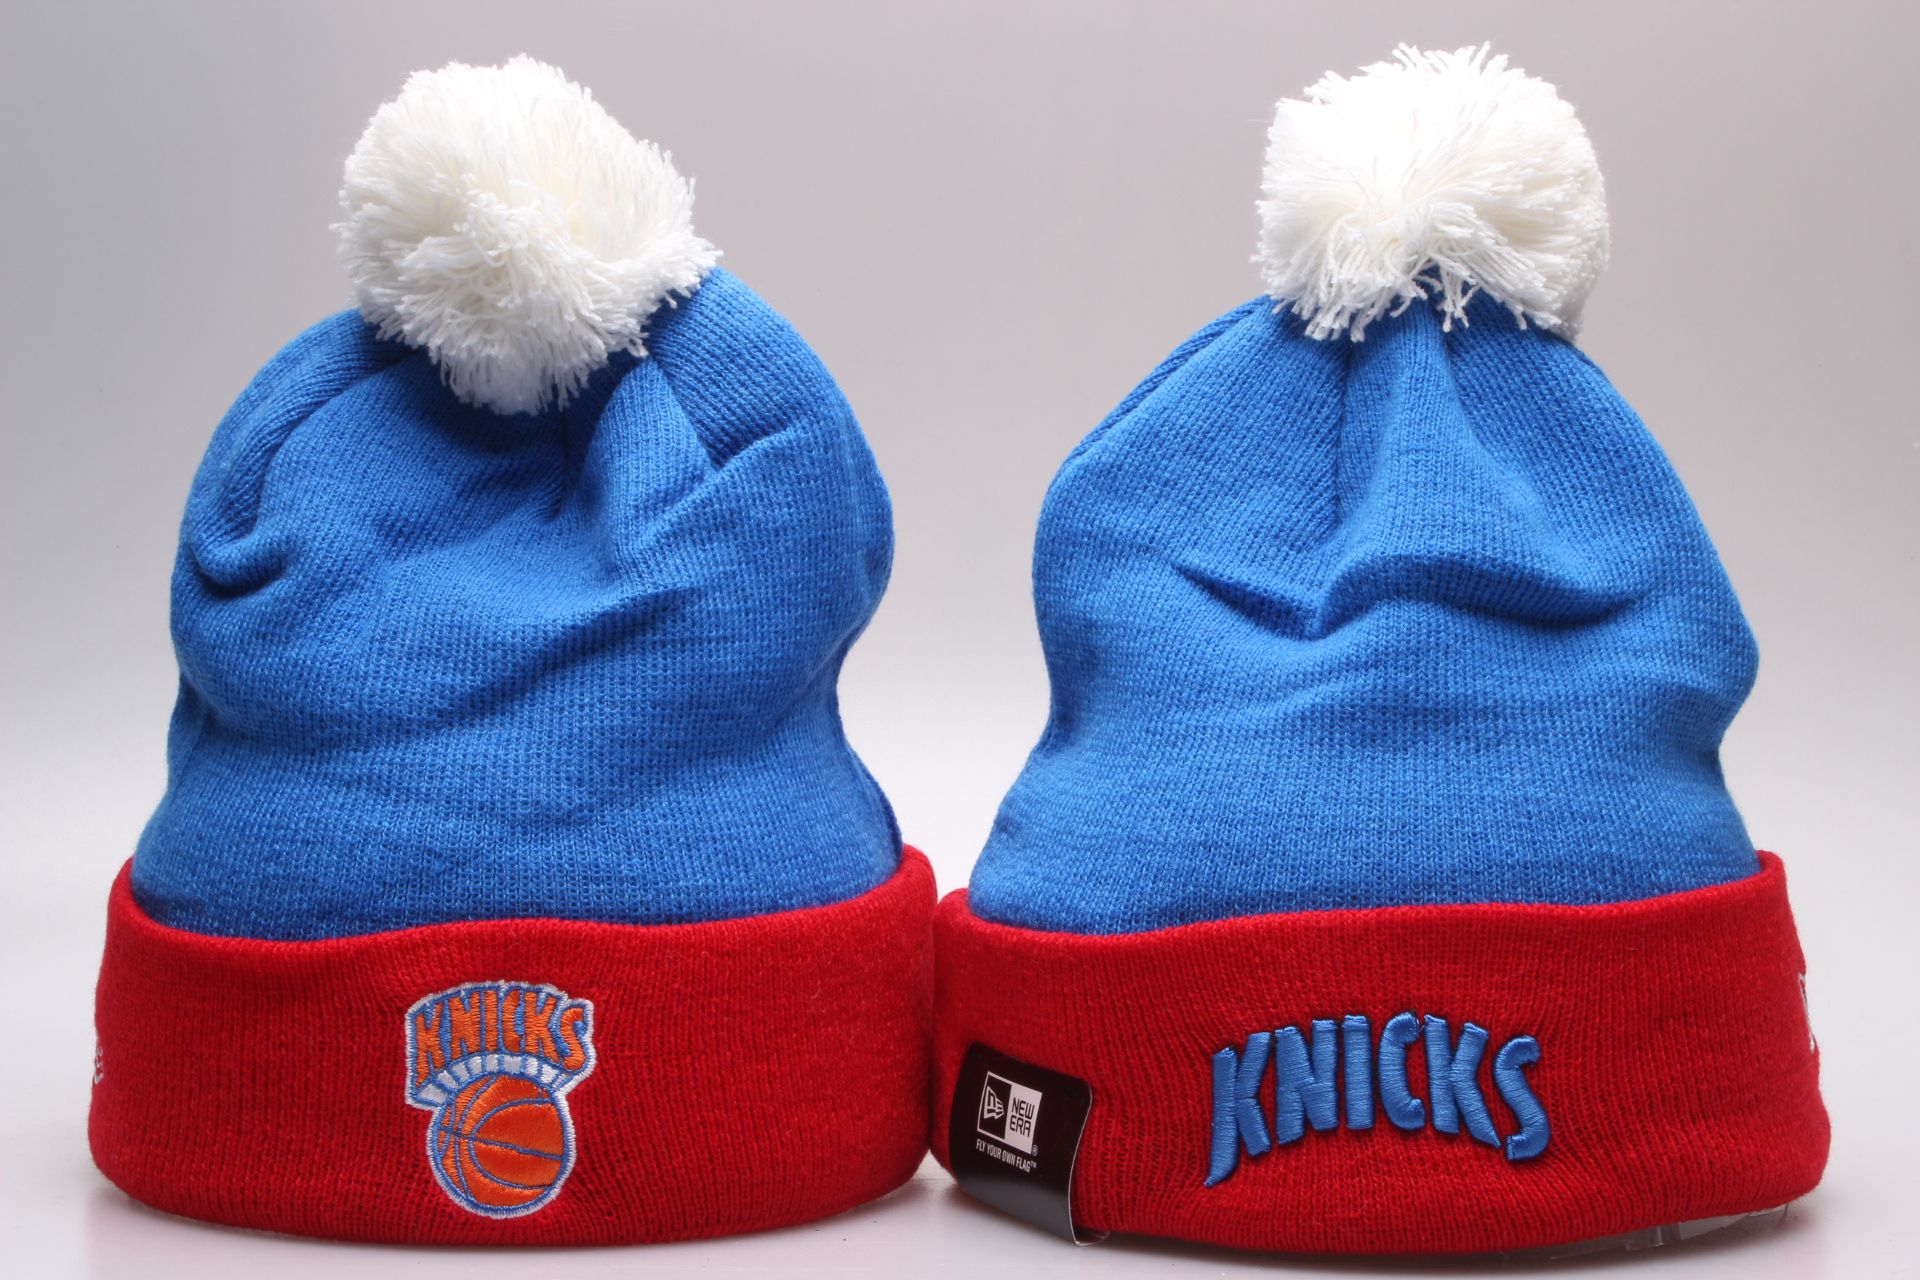 NBA New York Knicks Beanie hot hat